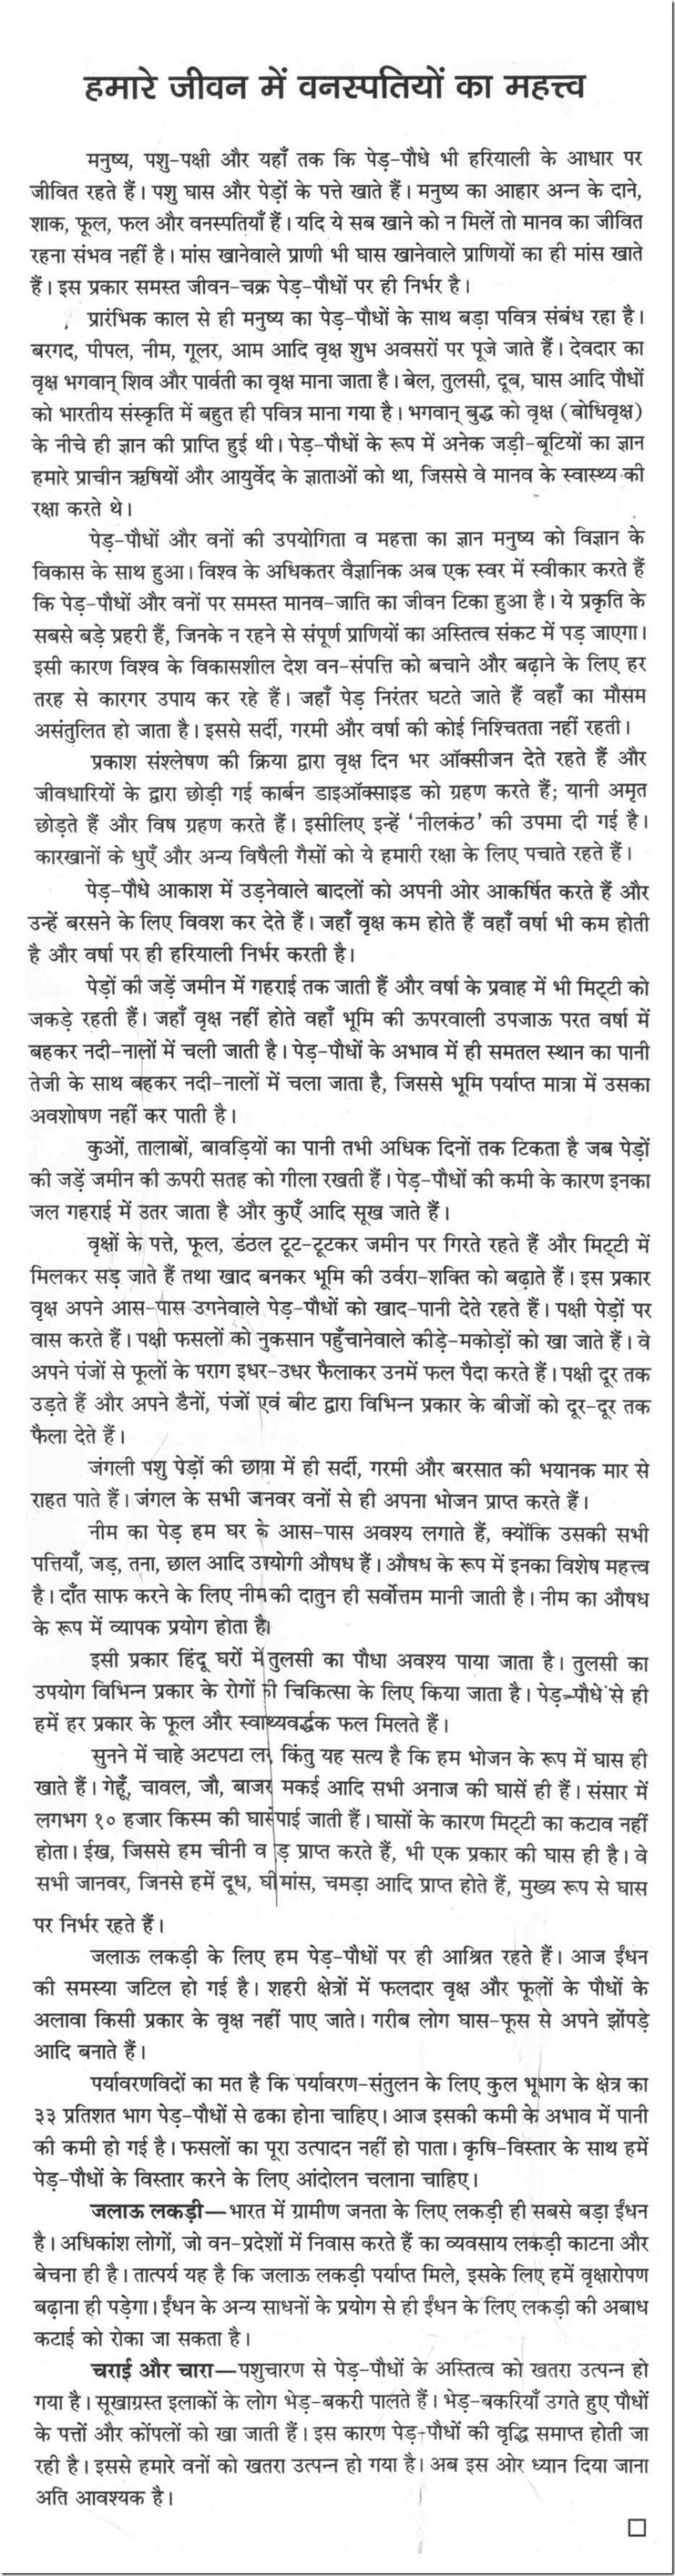 012 Value Of Life Essay Example On The Importance Plants In Our Hindi Trees L Staggering Hamlet Erwc Education